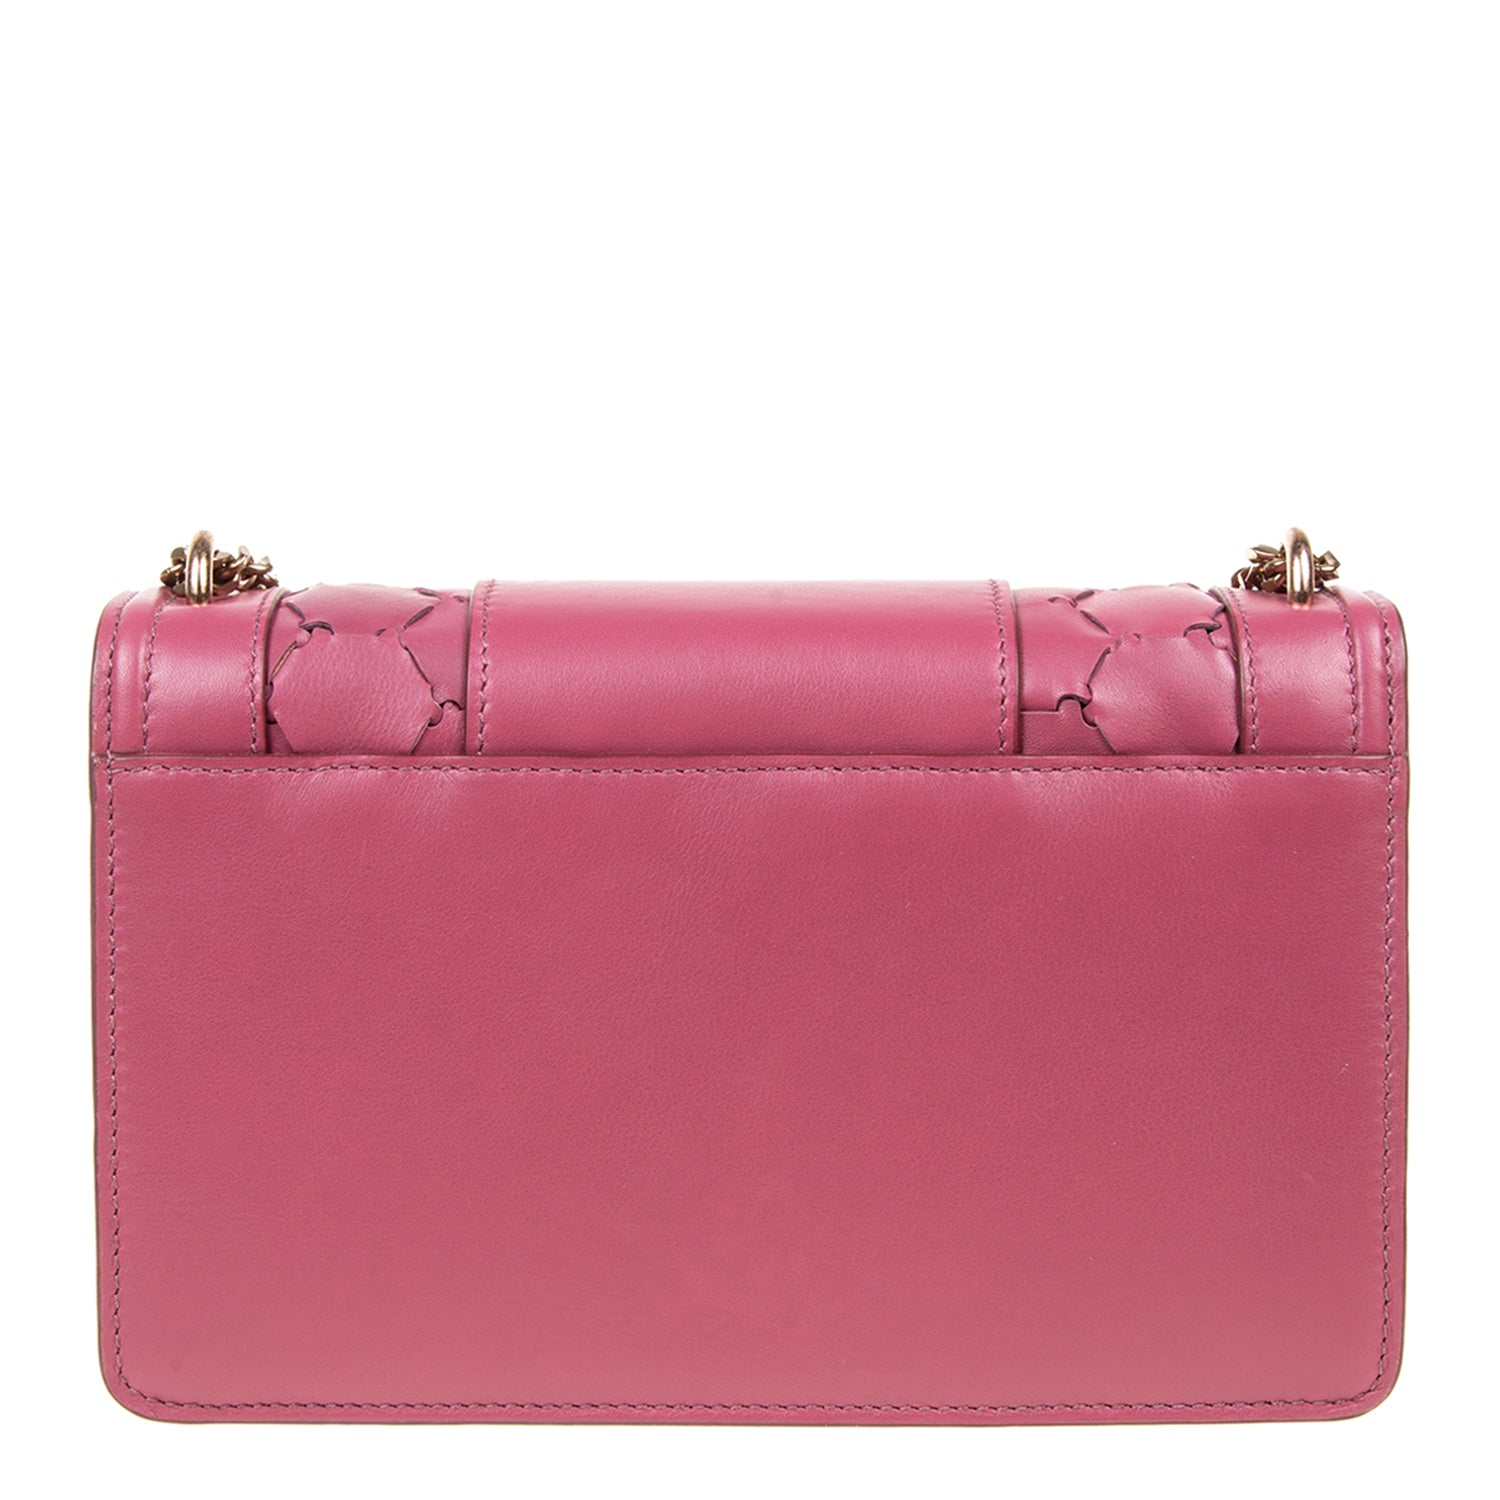 M U A L L A | Leather Shoulder Bag Mauve